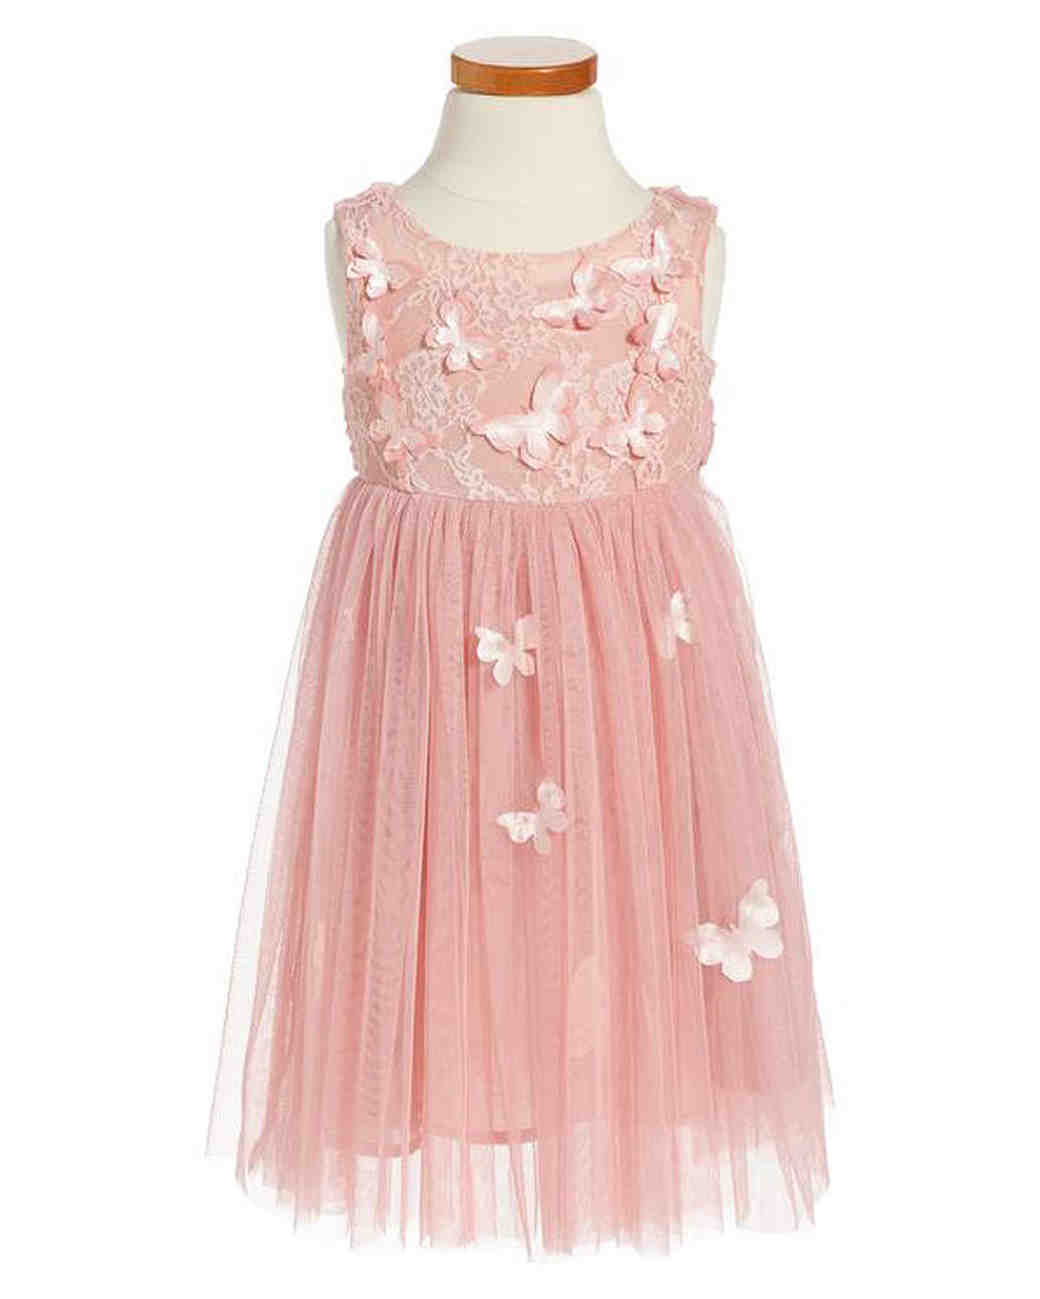 The prettiest pink dresses for your flower girls martha stewart the prettiest pink dresses for your flower girls martha stewart weddings mightylinksfo